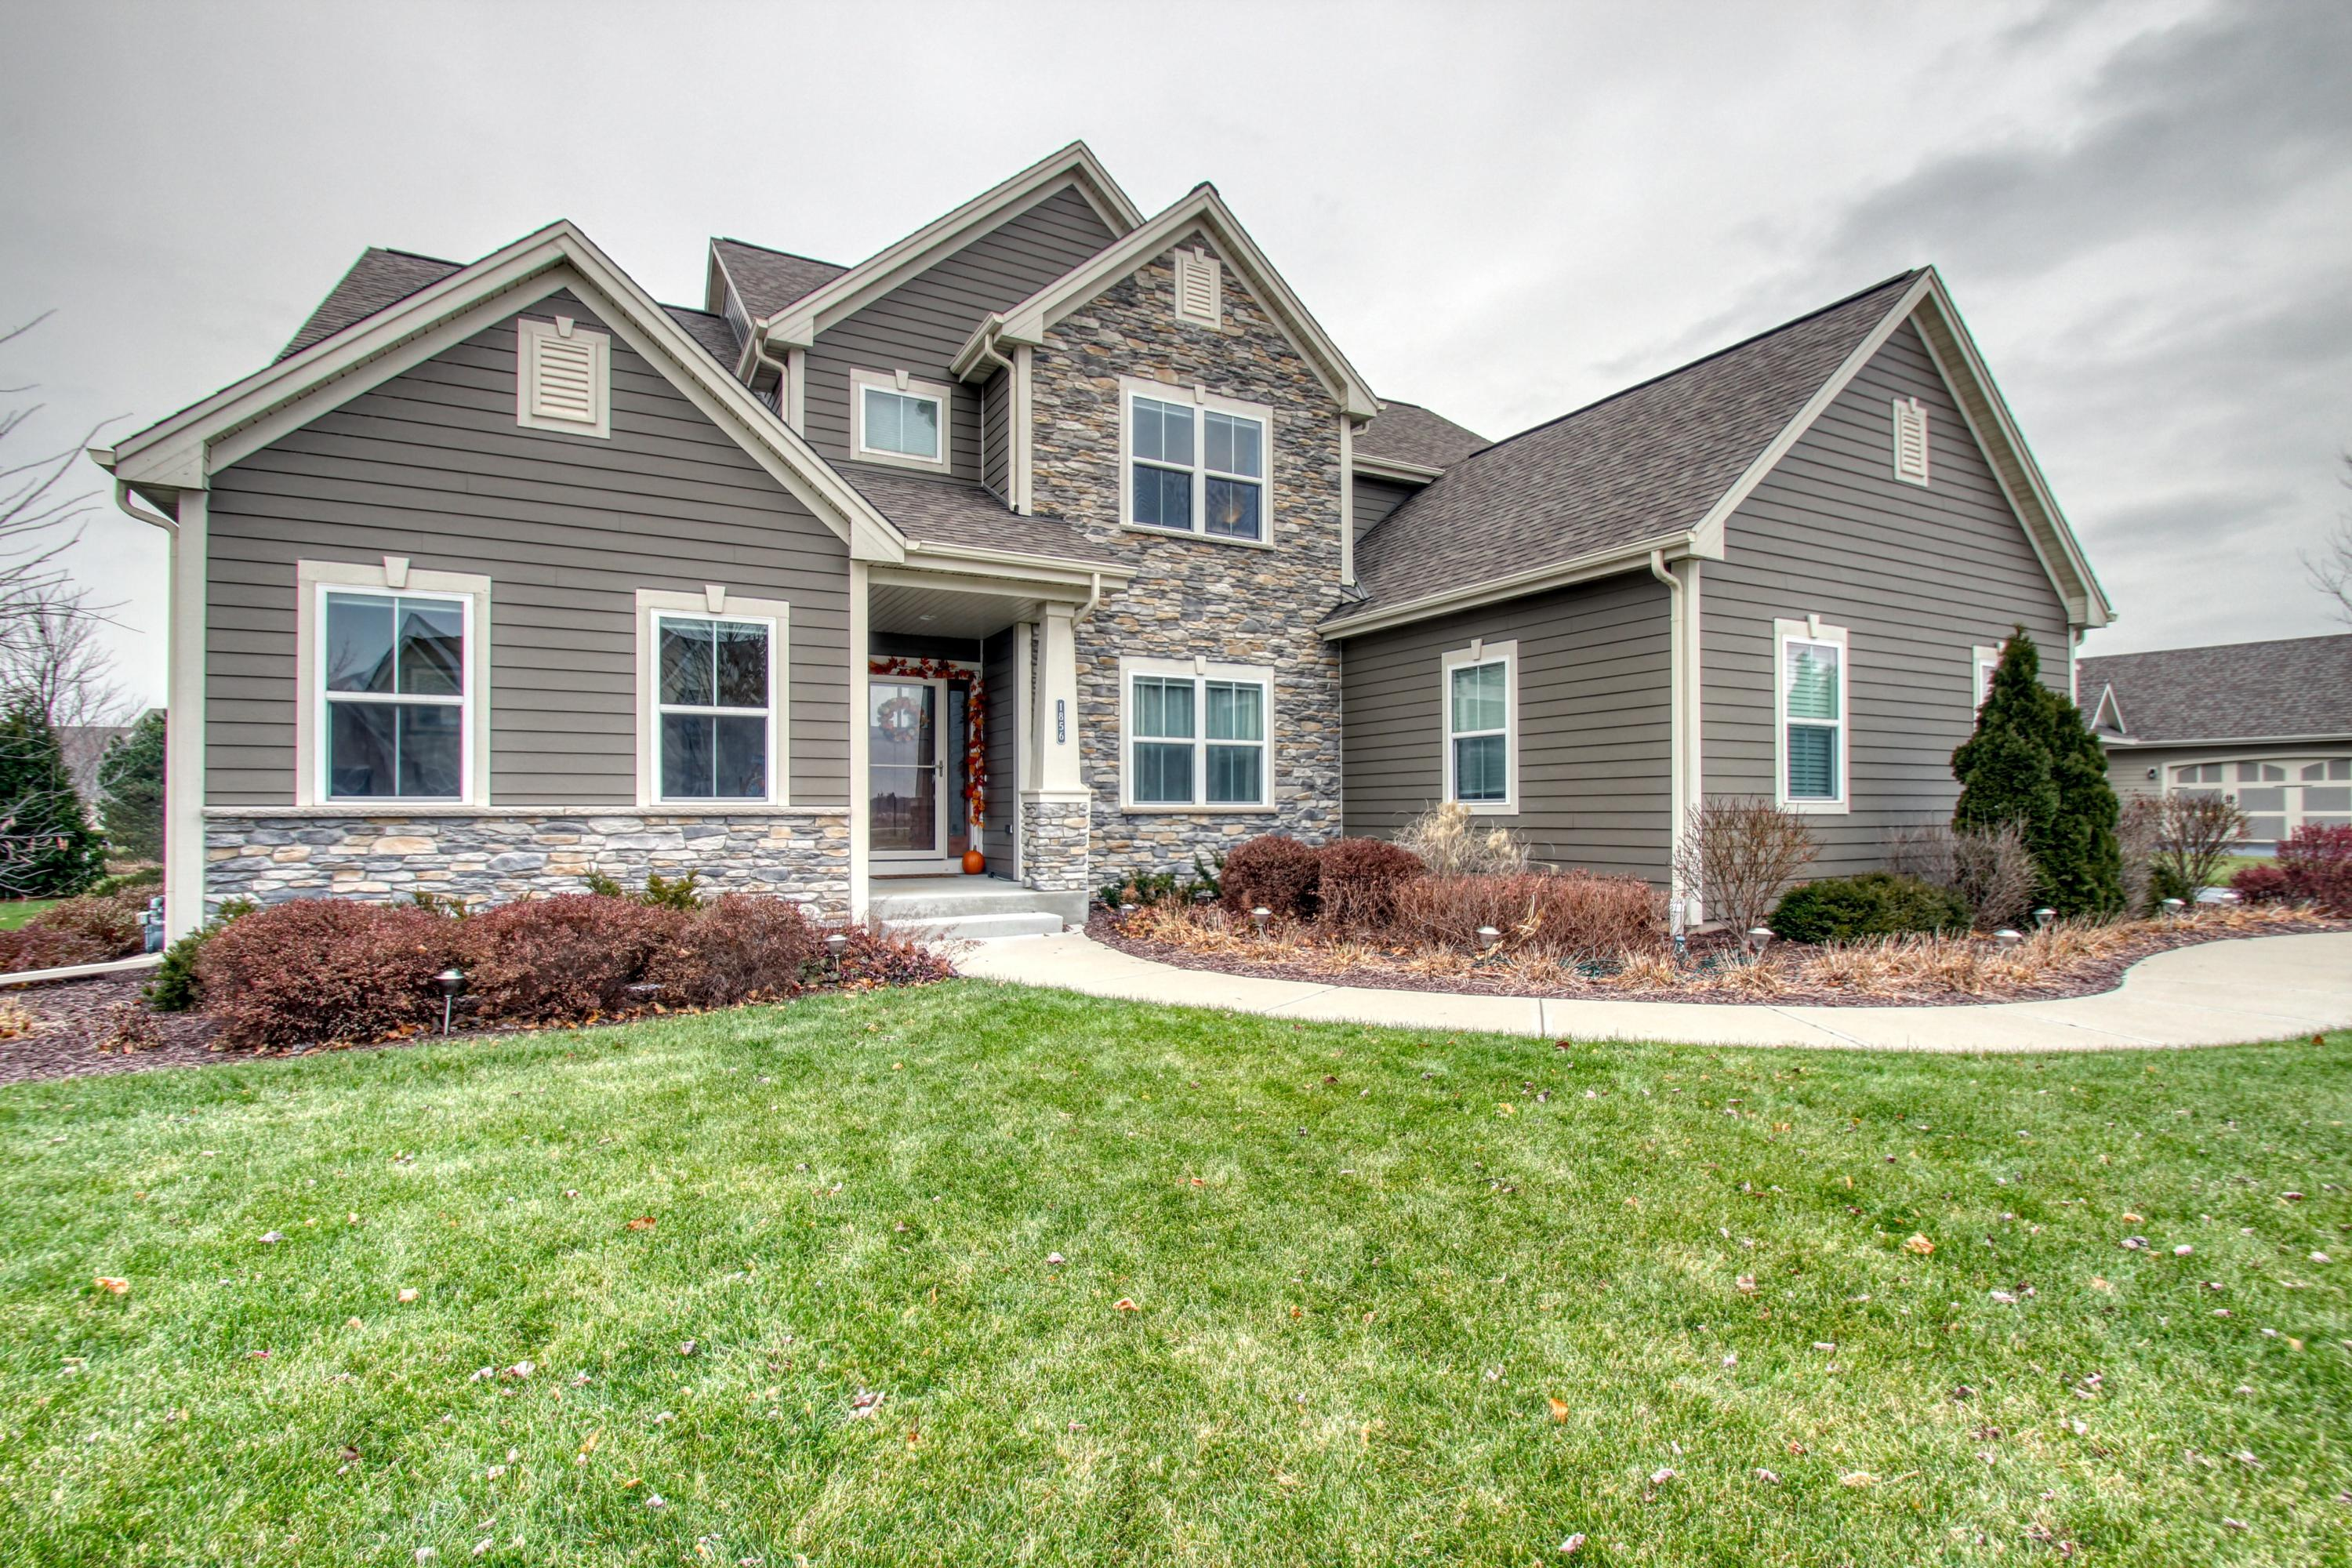 1856 River Lakes Rd S, Oconomowoc, Wisconsin 53066, 4 Bedrooms Bedrooms, 11 Rooms Rooms,2 BathroomsBathrooms,Single-Family,For Sale,River Lakes Rd S,1614984